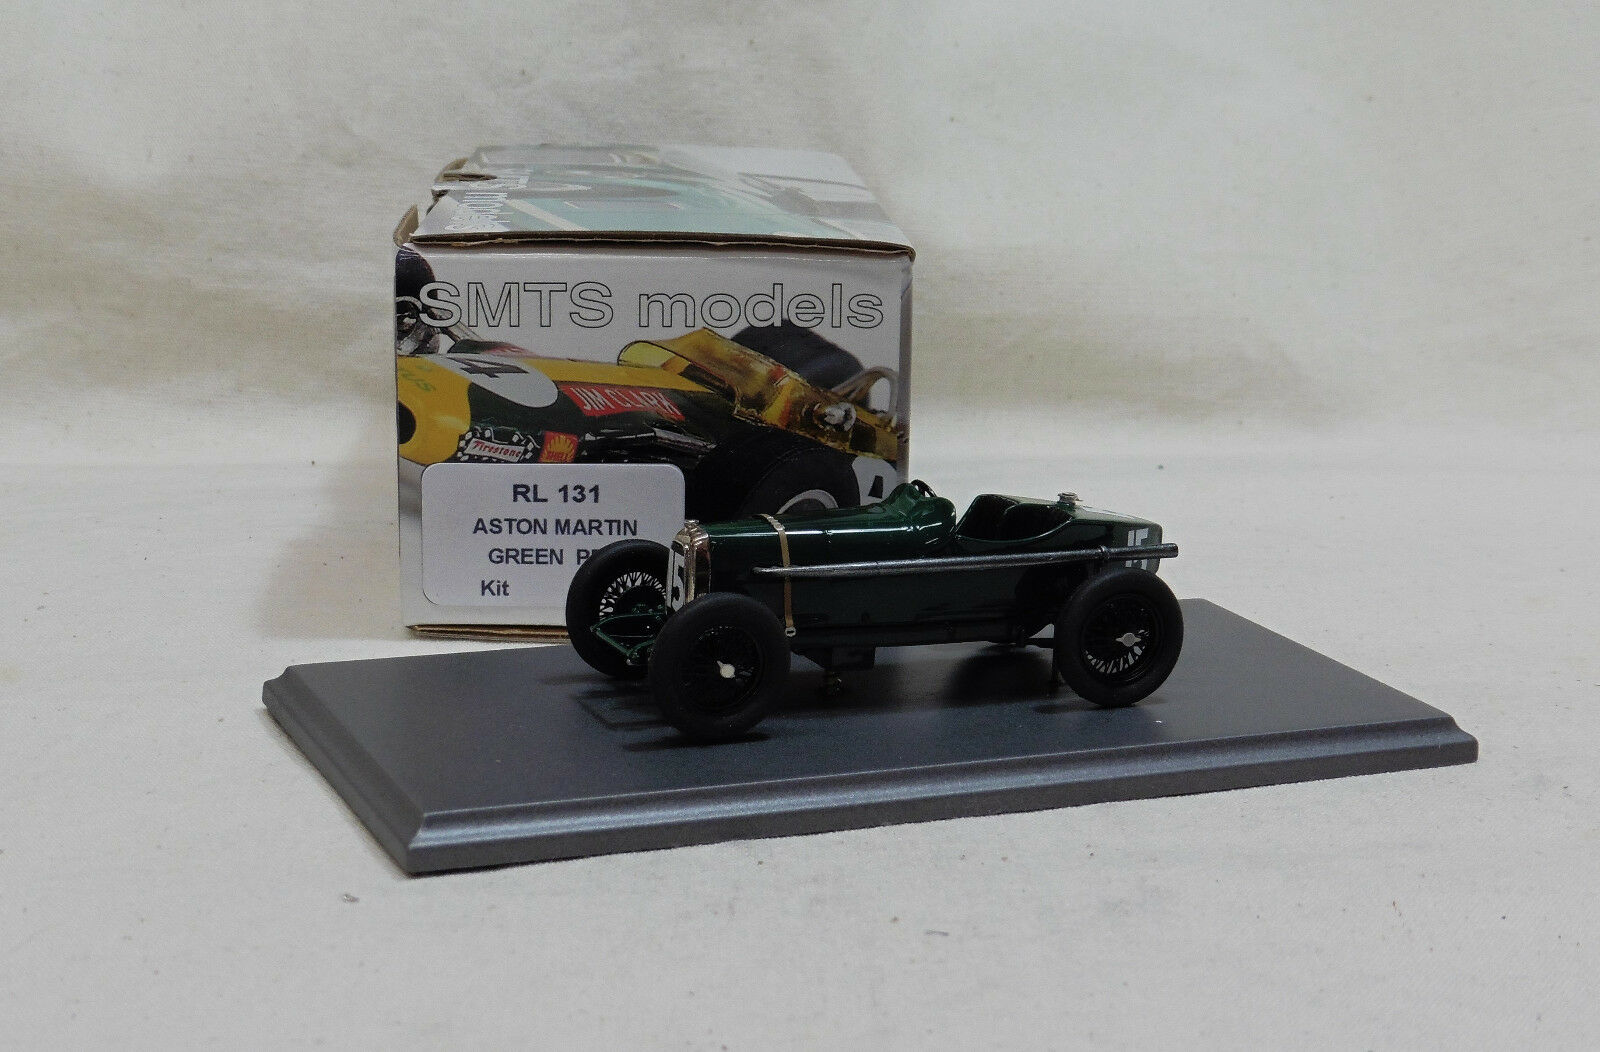 1/43 RL131 Aston Martin Verde Pea By SMTS